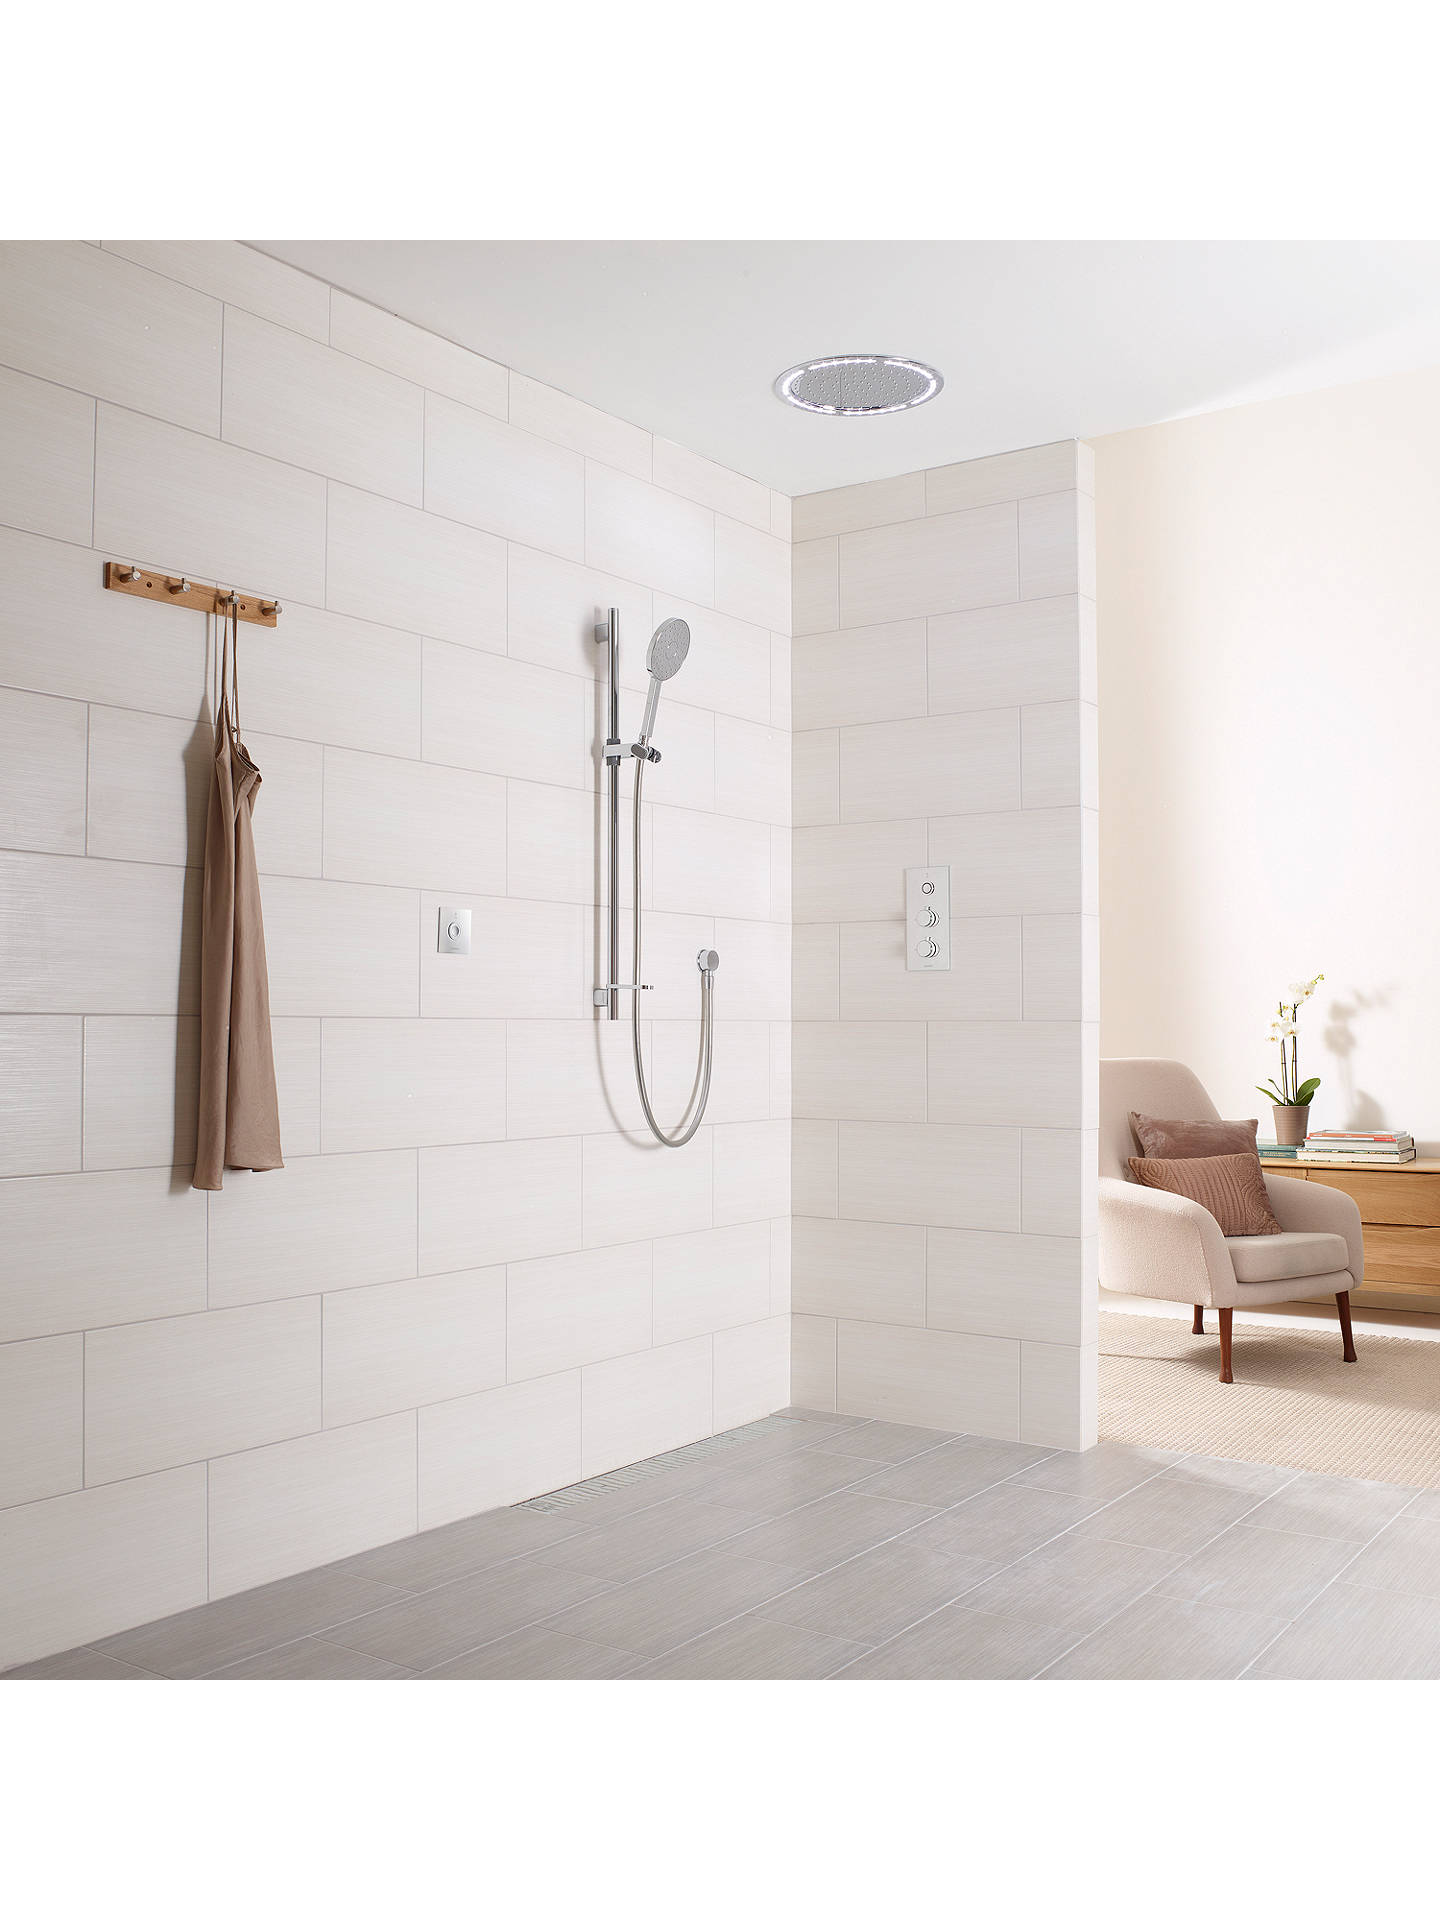 BuyAqualisa Infinia 1 Smart Shower with Remote and 140mm Handset, Silver Online at johnlewis.com